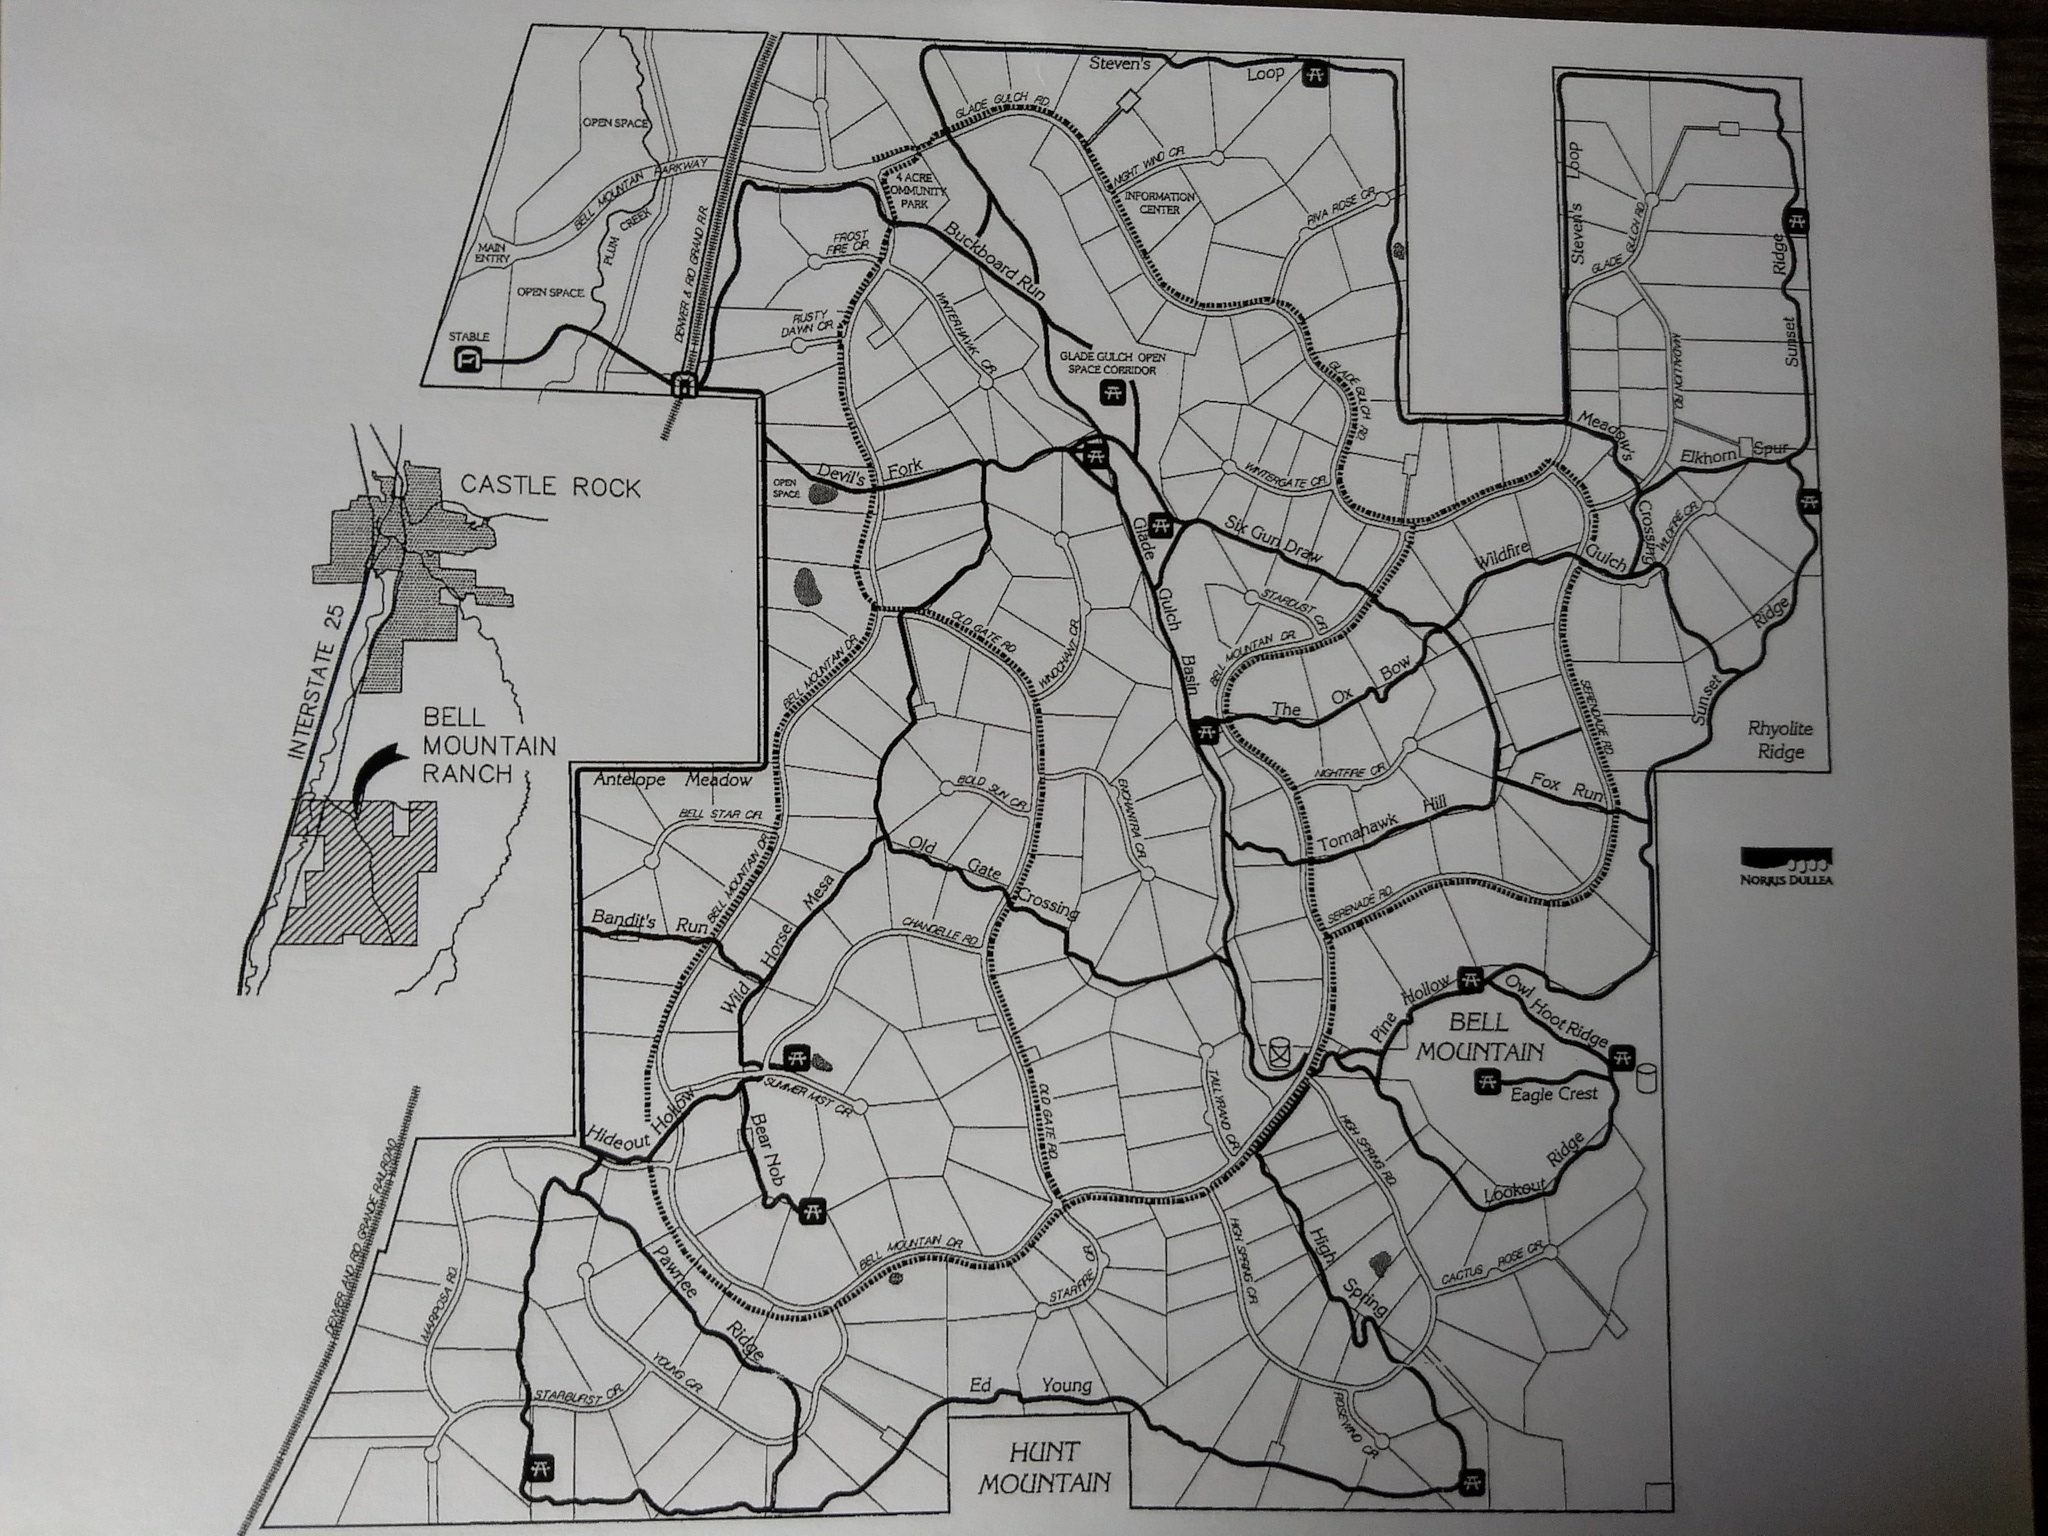 Here's the trail map we have been using all summer to coordinate our trail grooming efforts.